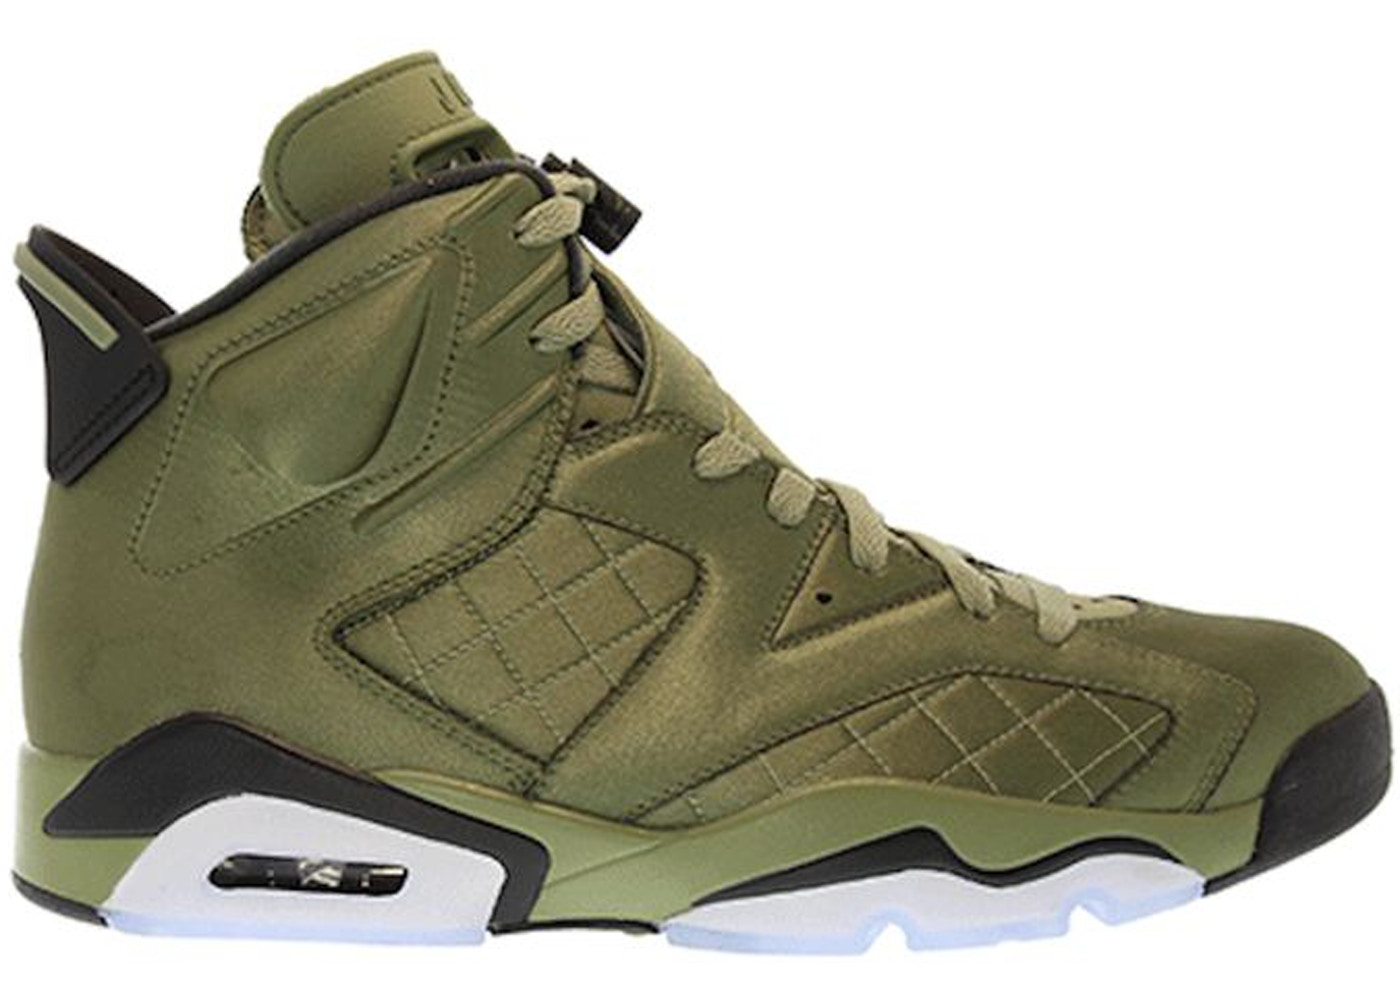 separation shoes 26726 80c1f Jordan 6 Retro Pinnacle Promo Flight Jacket - AH4614-303